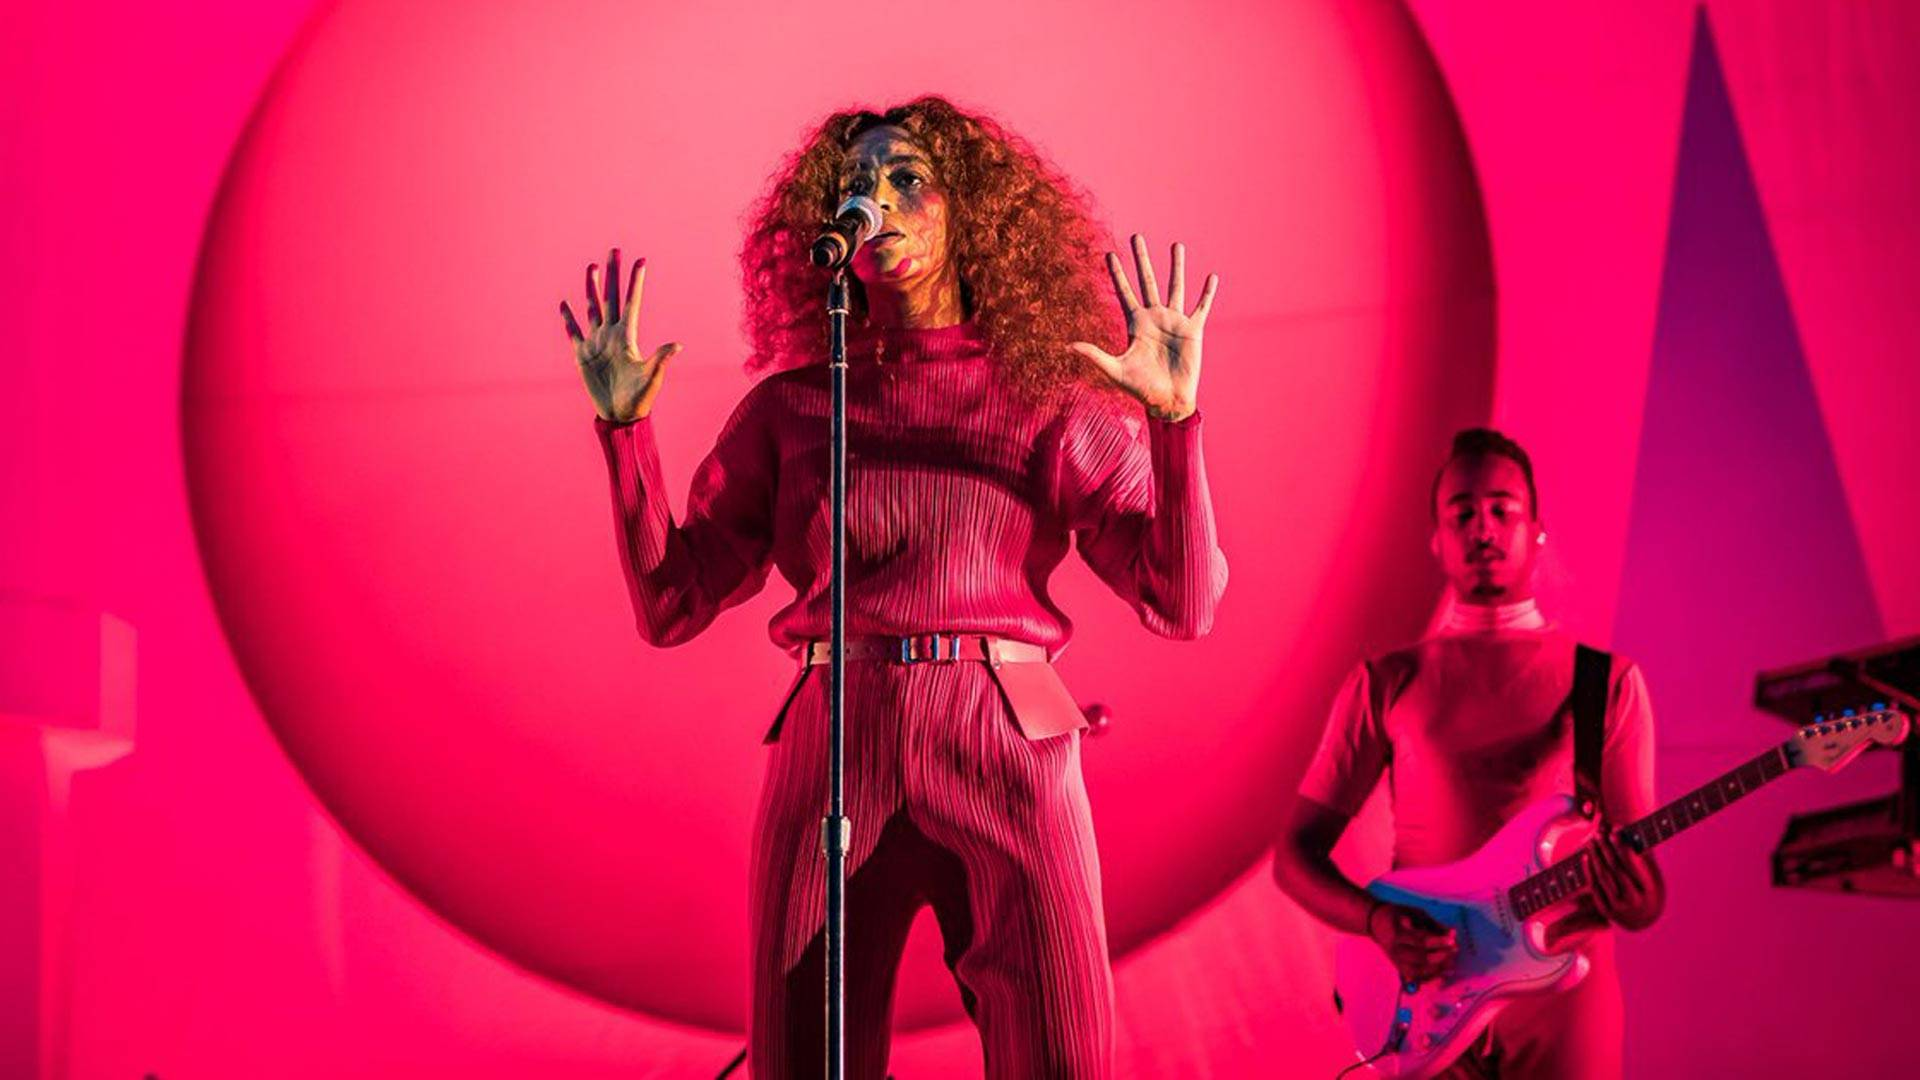 Solange performs Aug. 13, 2017, at the Outside Lands music festival in Golden Gate Park. Solange specifically offered support for her black, LGBTQ, and Muslim fans in the wake of the white nationalist violence in Charlottesville. via saintheron/Instagram